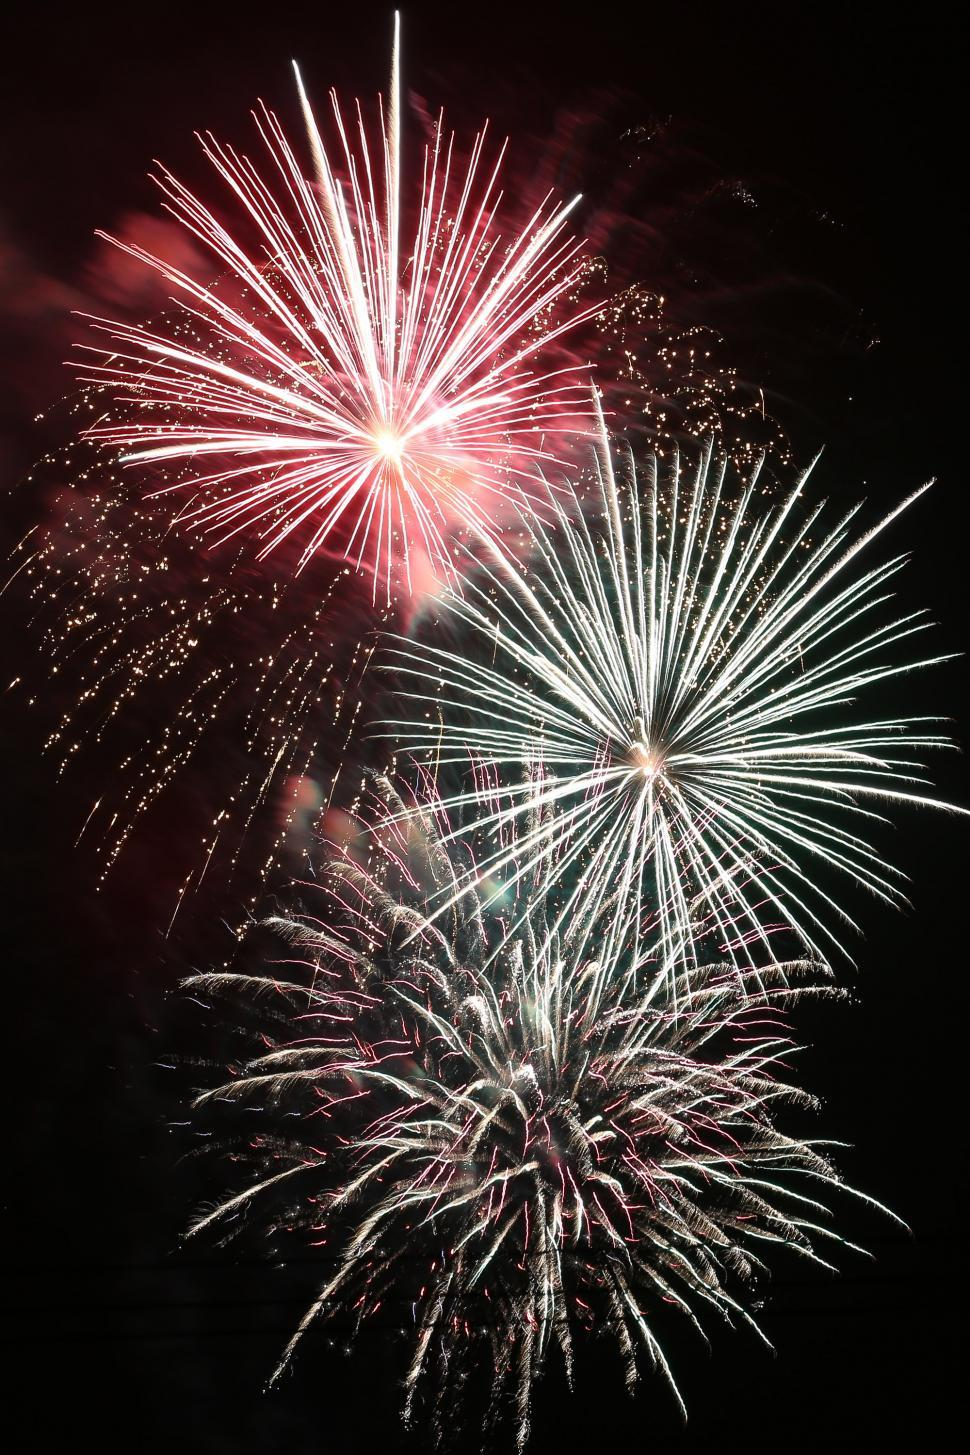 Download Free Stock HD Photo of Fireworks in sky Online